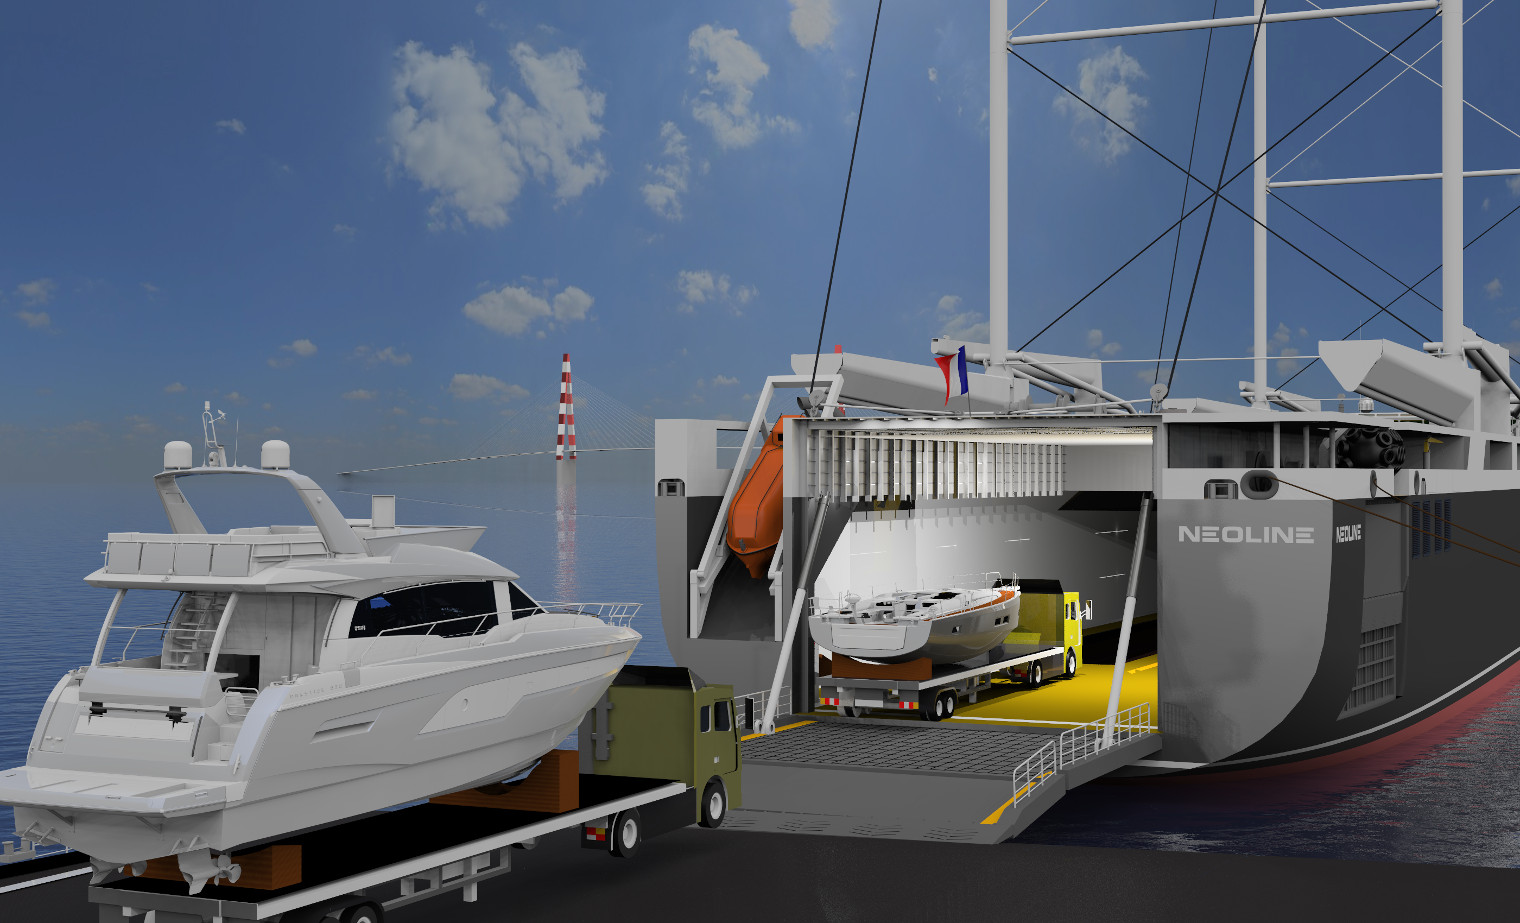 Groupe Beneteau confirms its interest for NEOLINE - NEOLINE